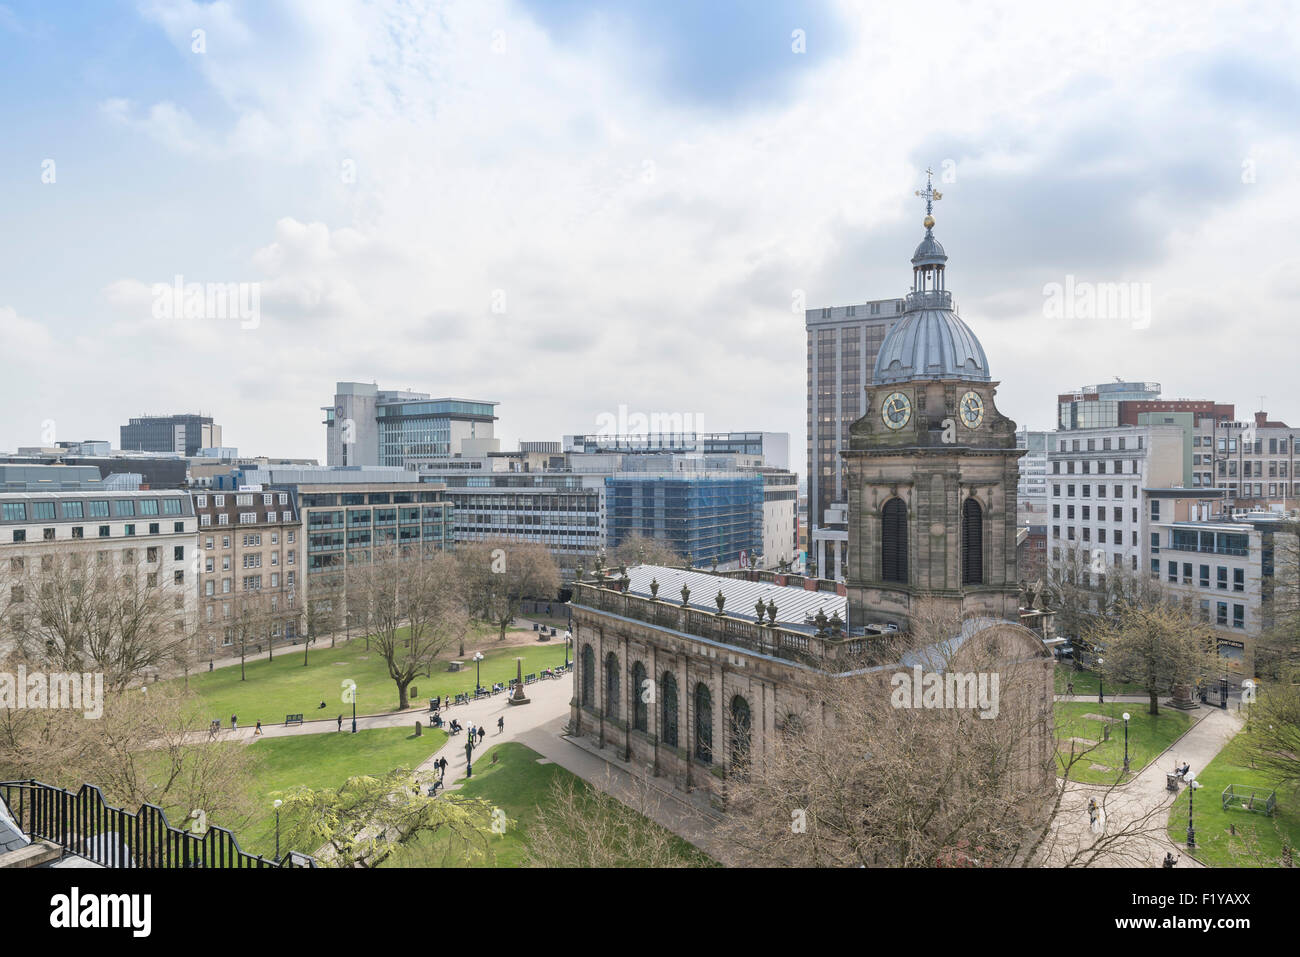 St Philips Anglican Cathedral Birmingham England - Stock Image